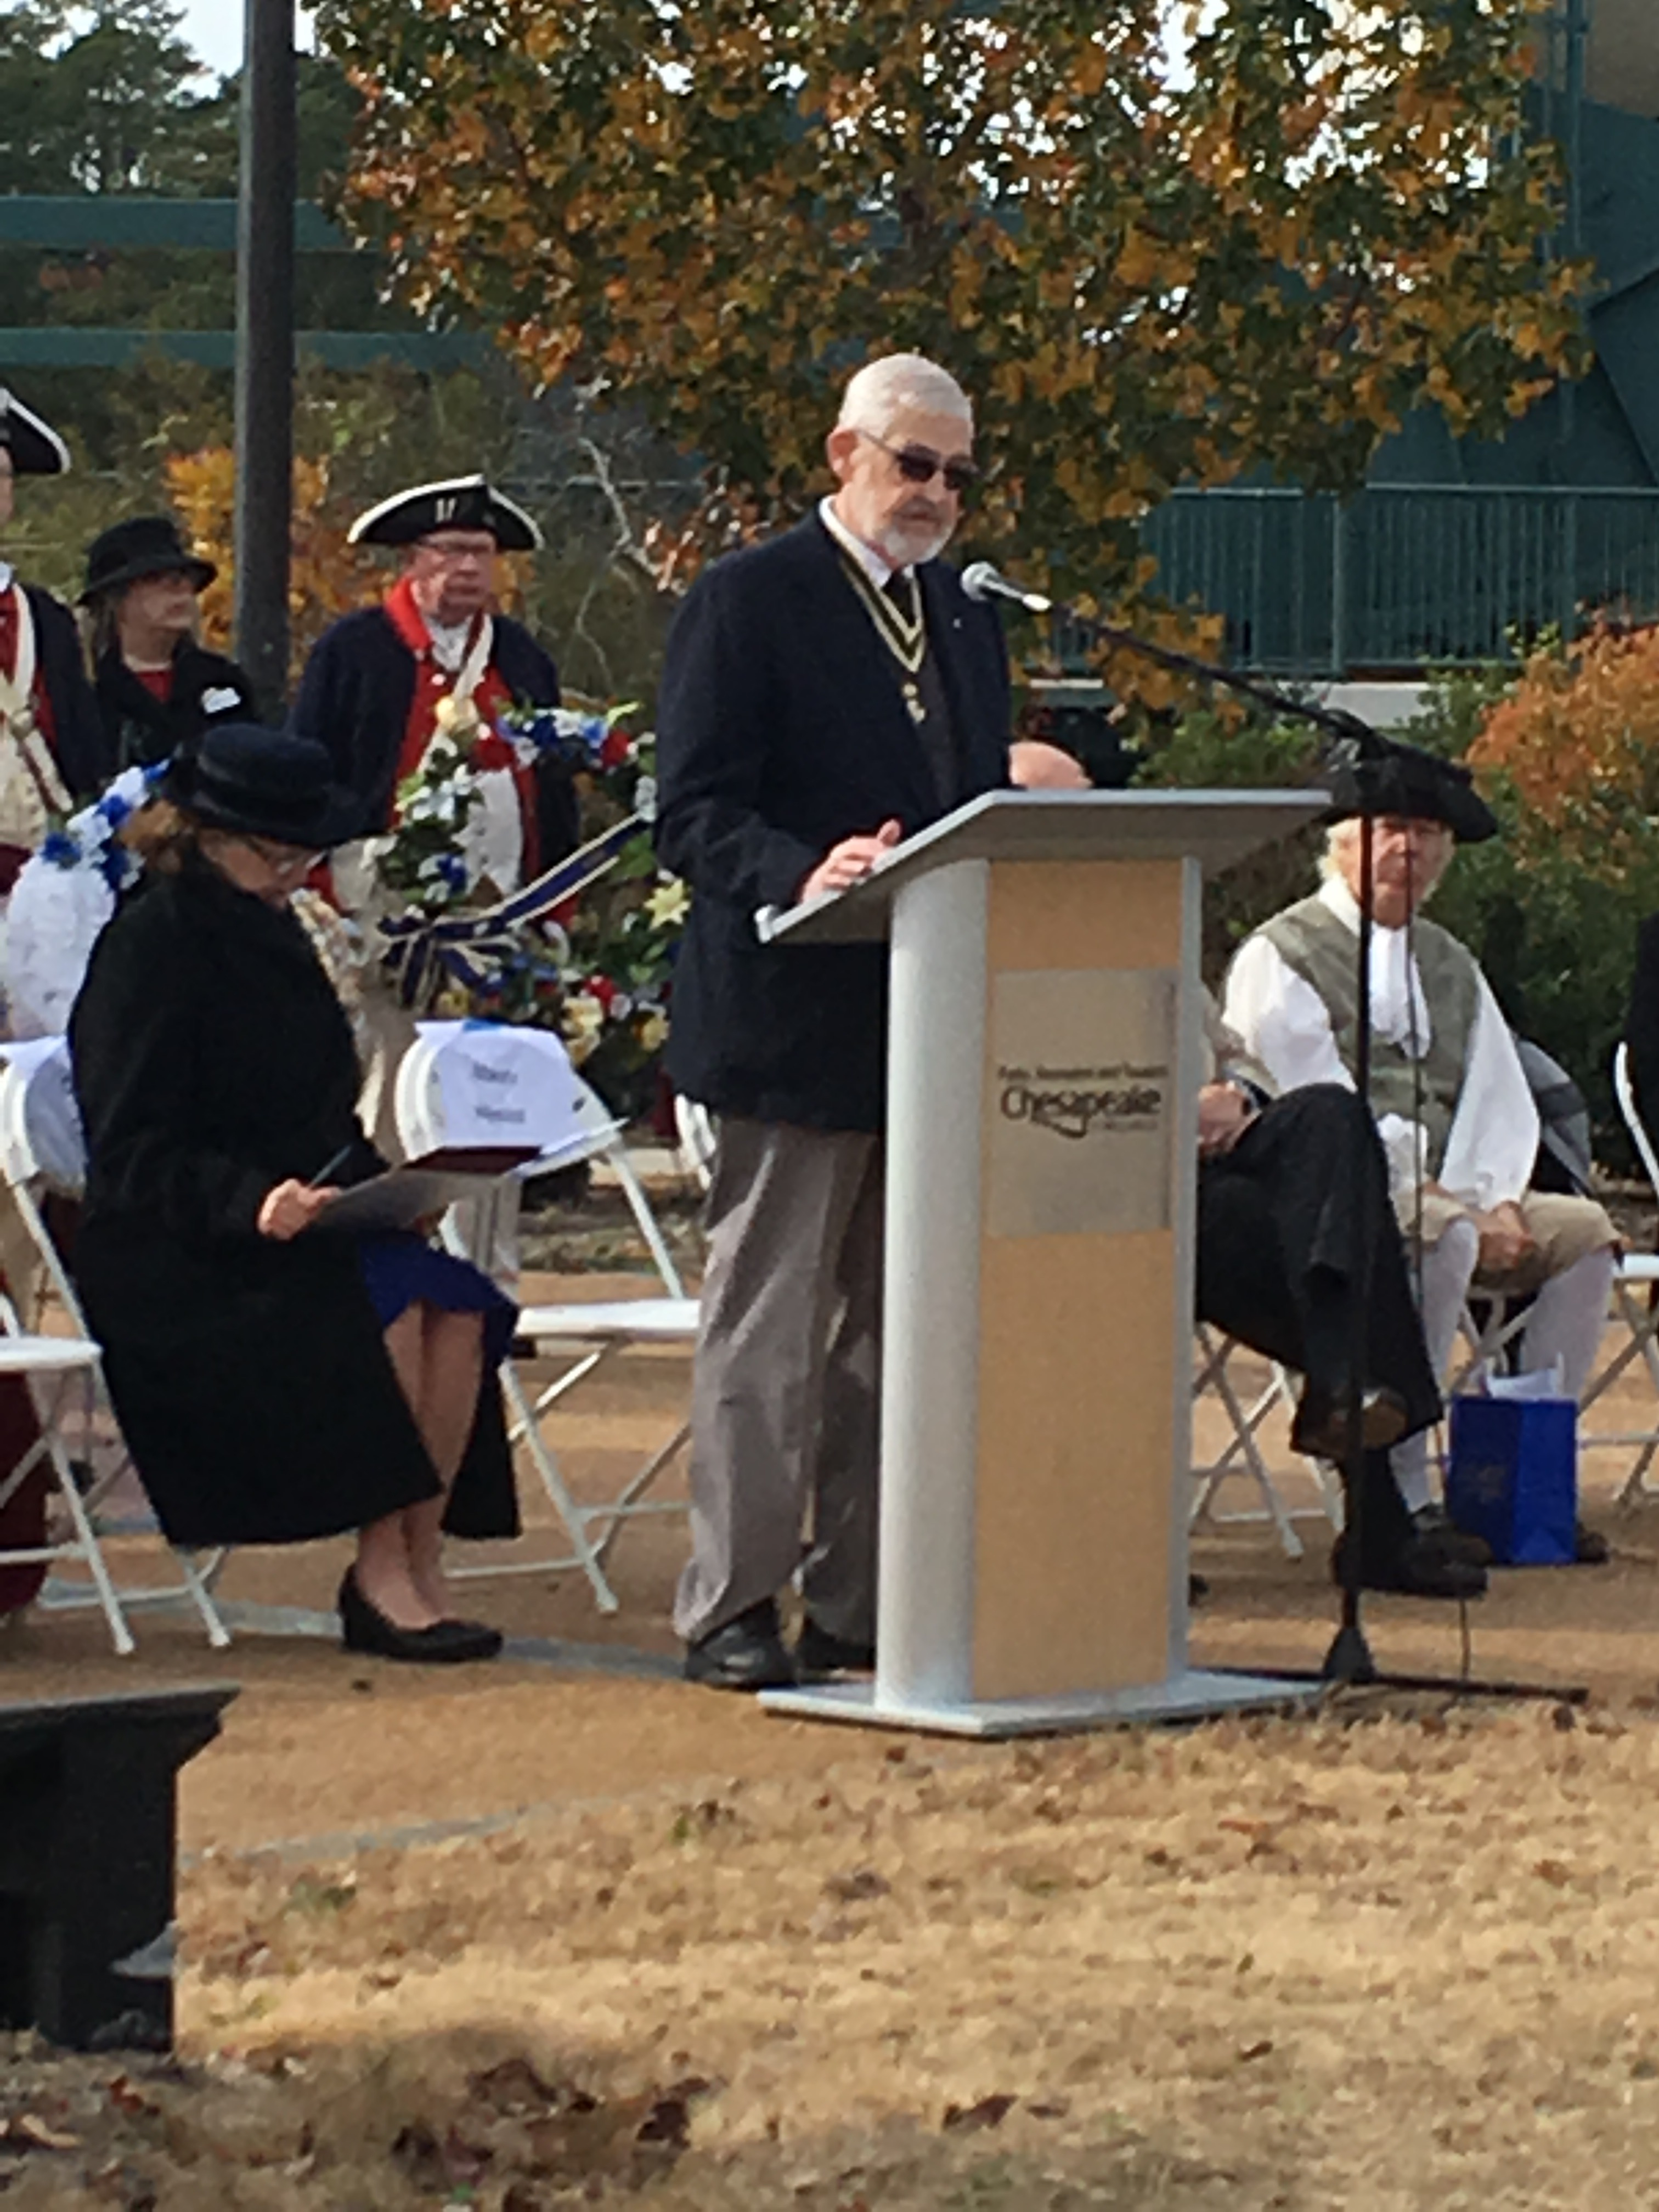 Norfolk Chapter SAR President Maury Weeks delivers his final speech at the Battle of Great Bridge Ceremony